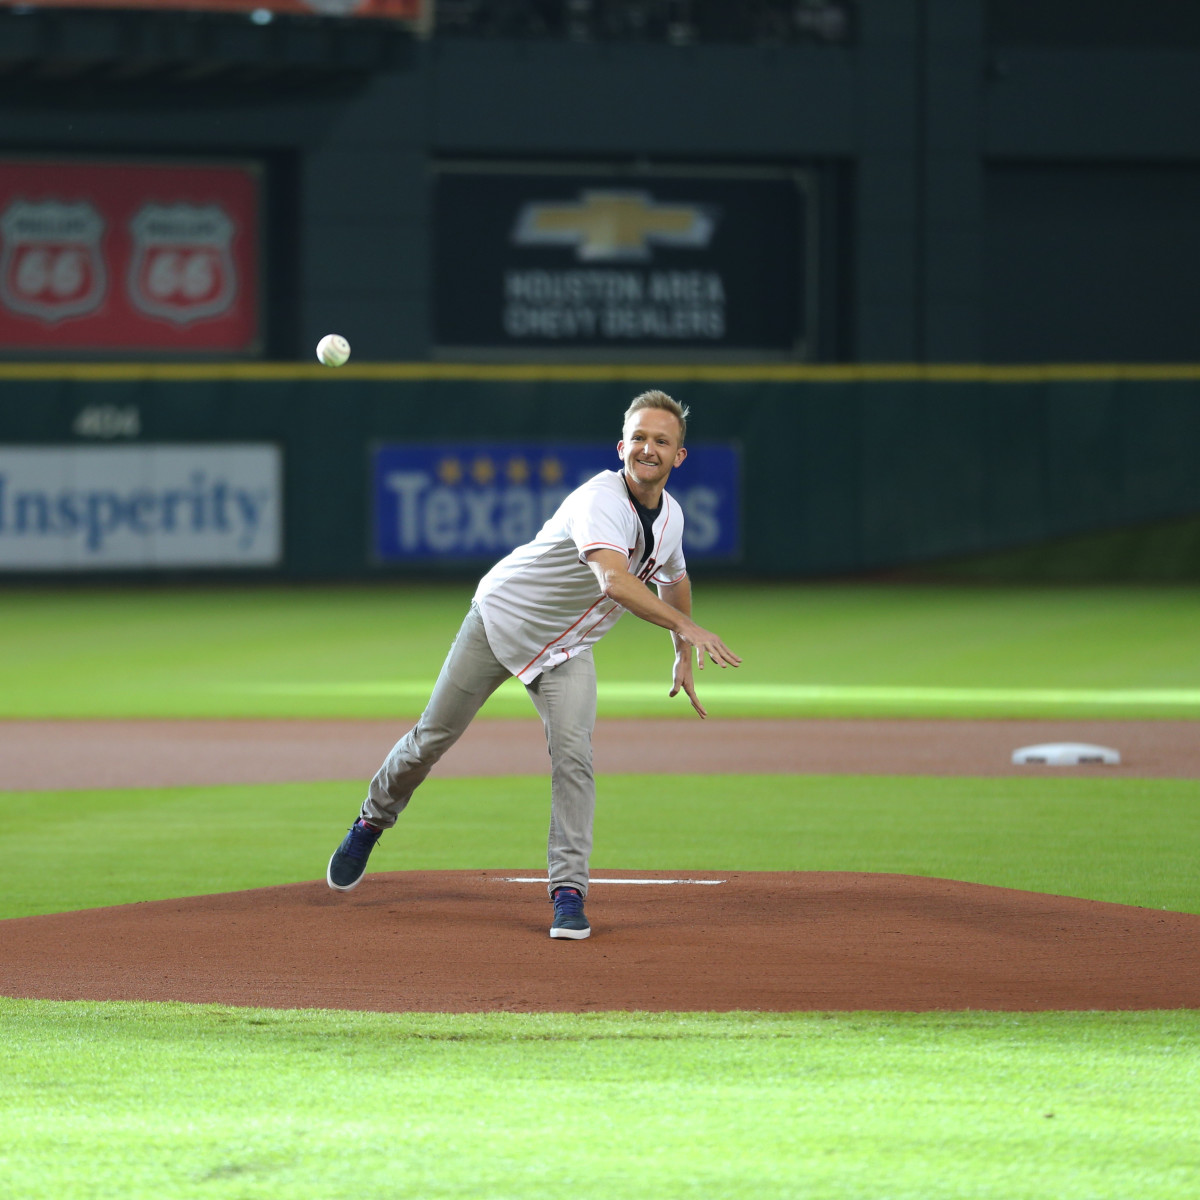 Houston, Eric Ladin, The Brink, July 2015, Astros Game